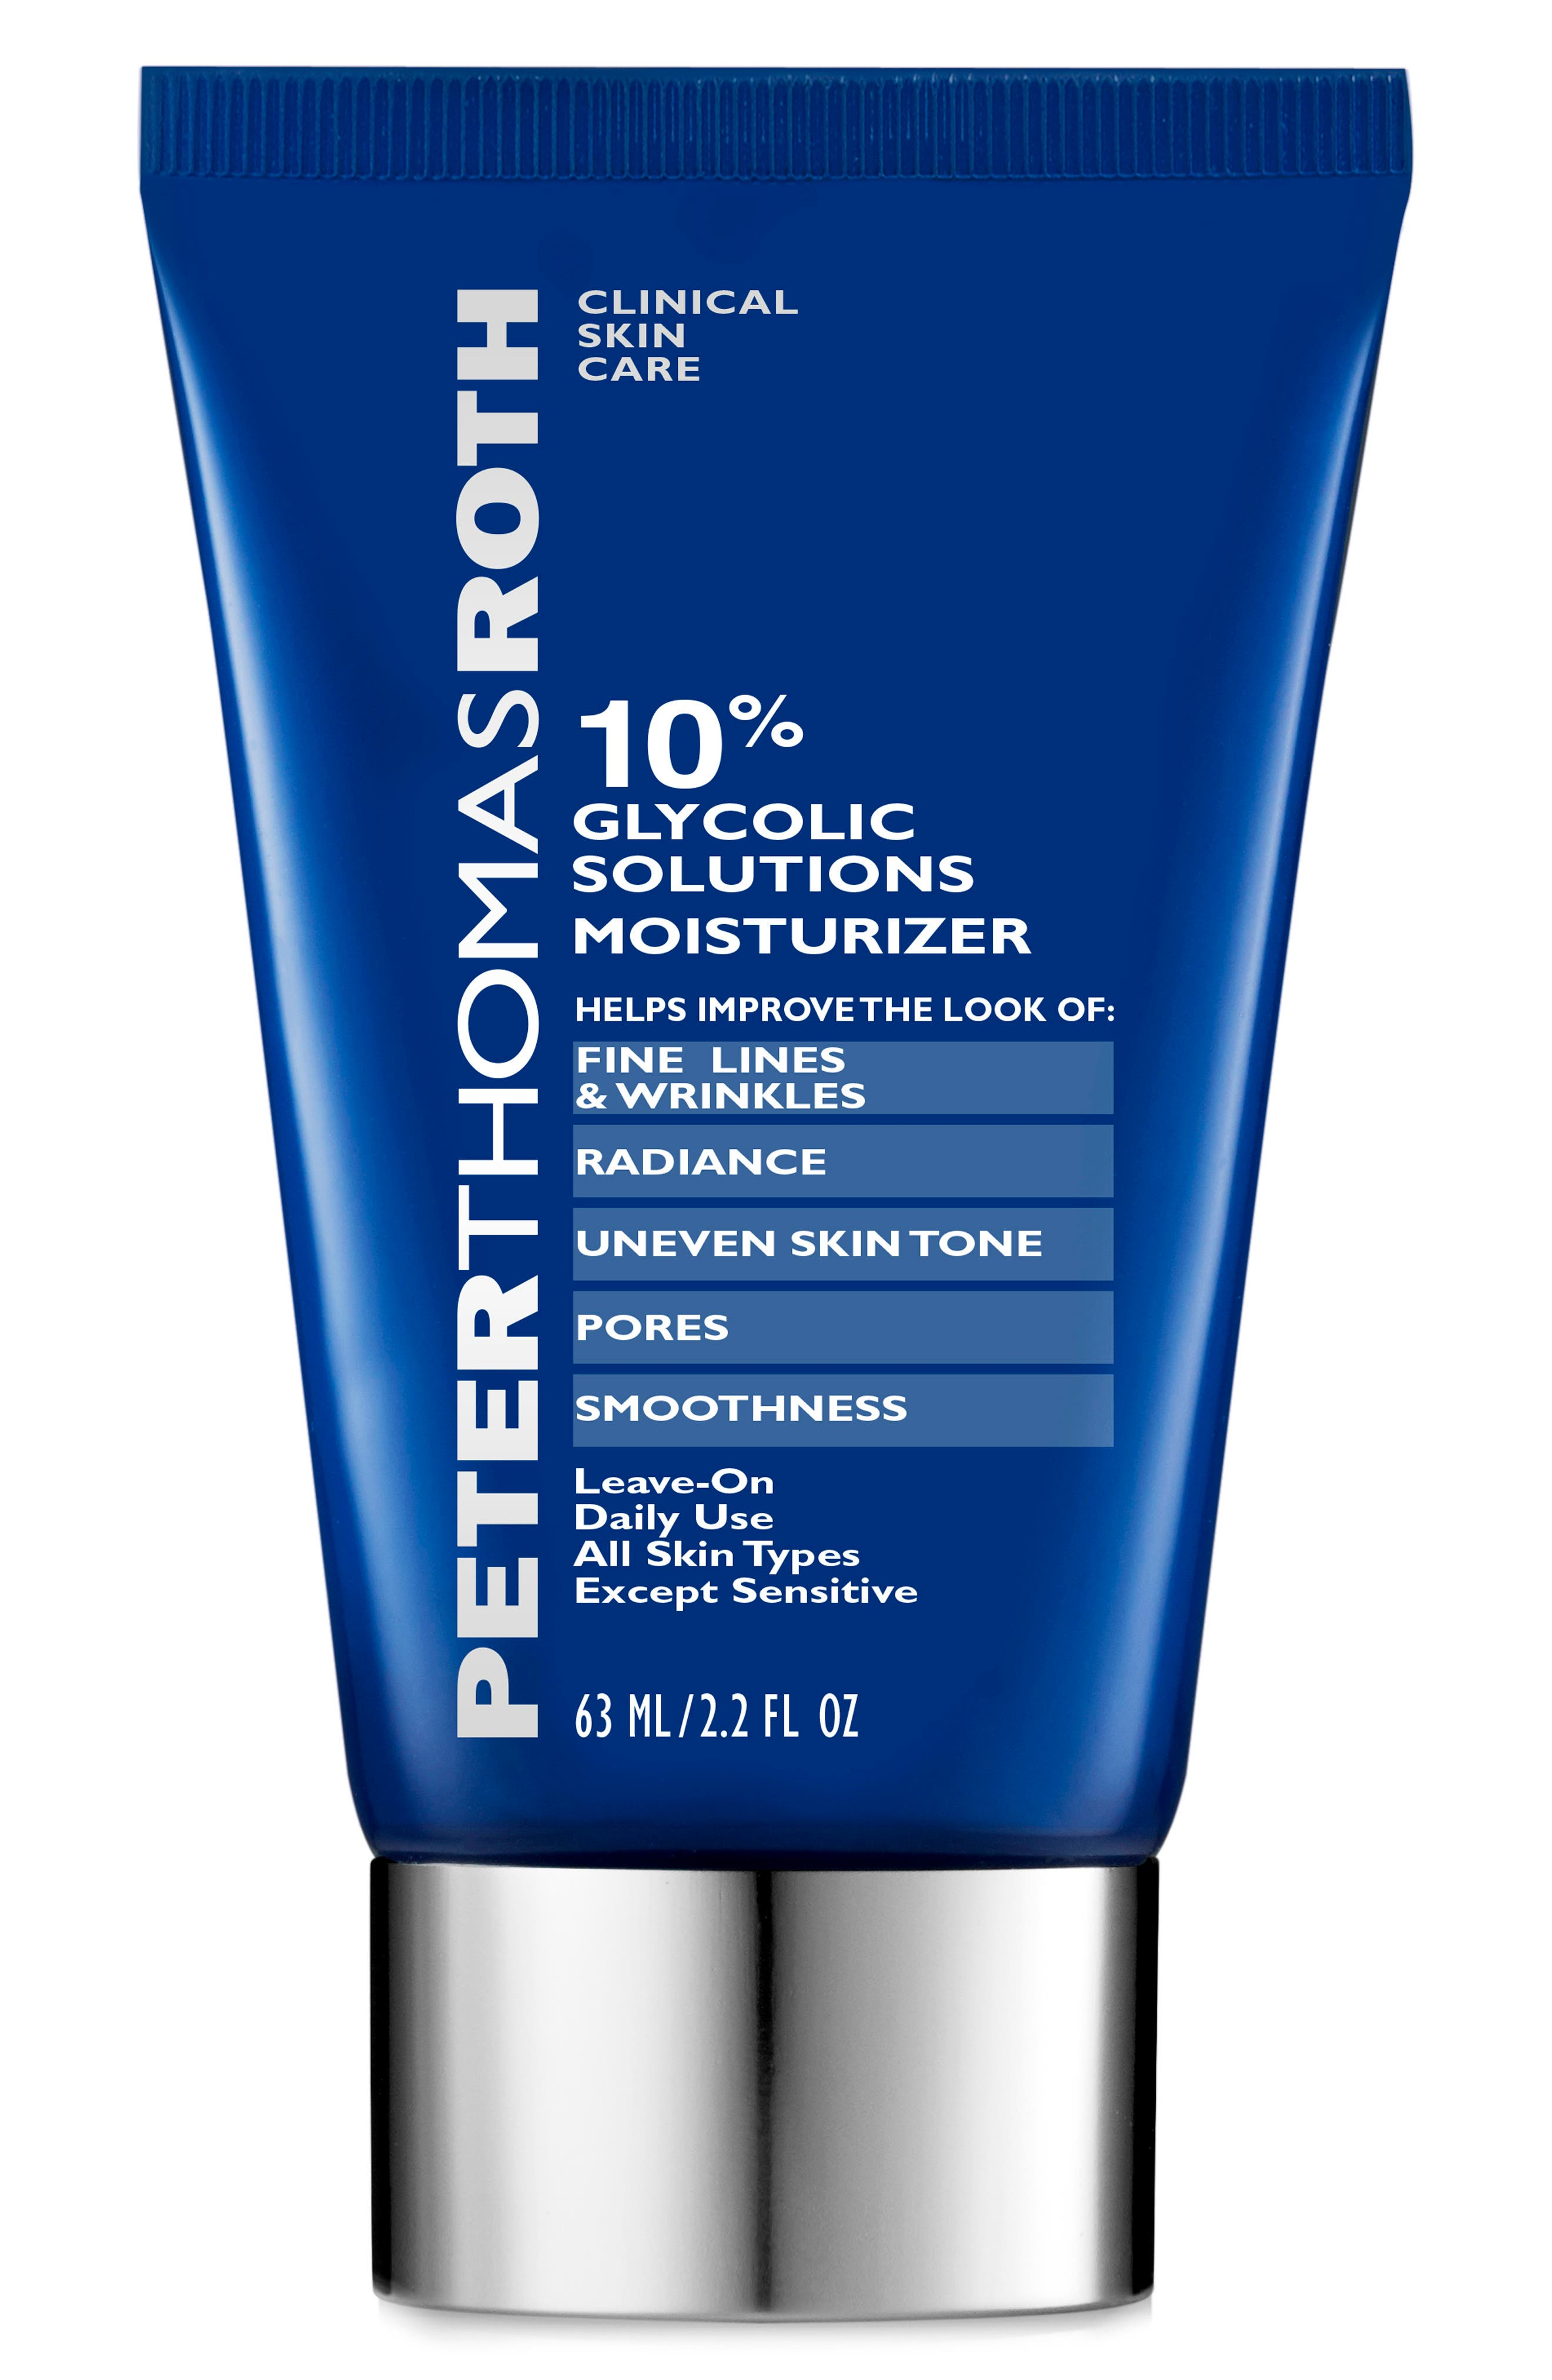 PETER THOMAS ROTH 10% Glycolic Solutions Moisturizer, Main, color, NO COLOR